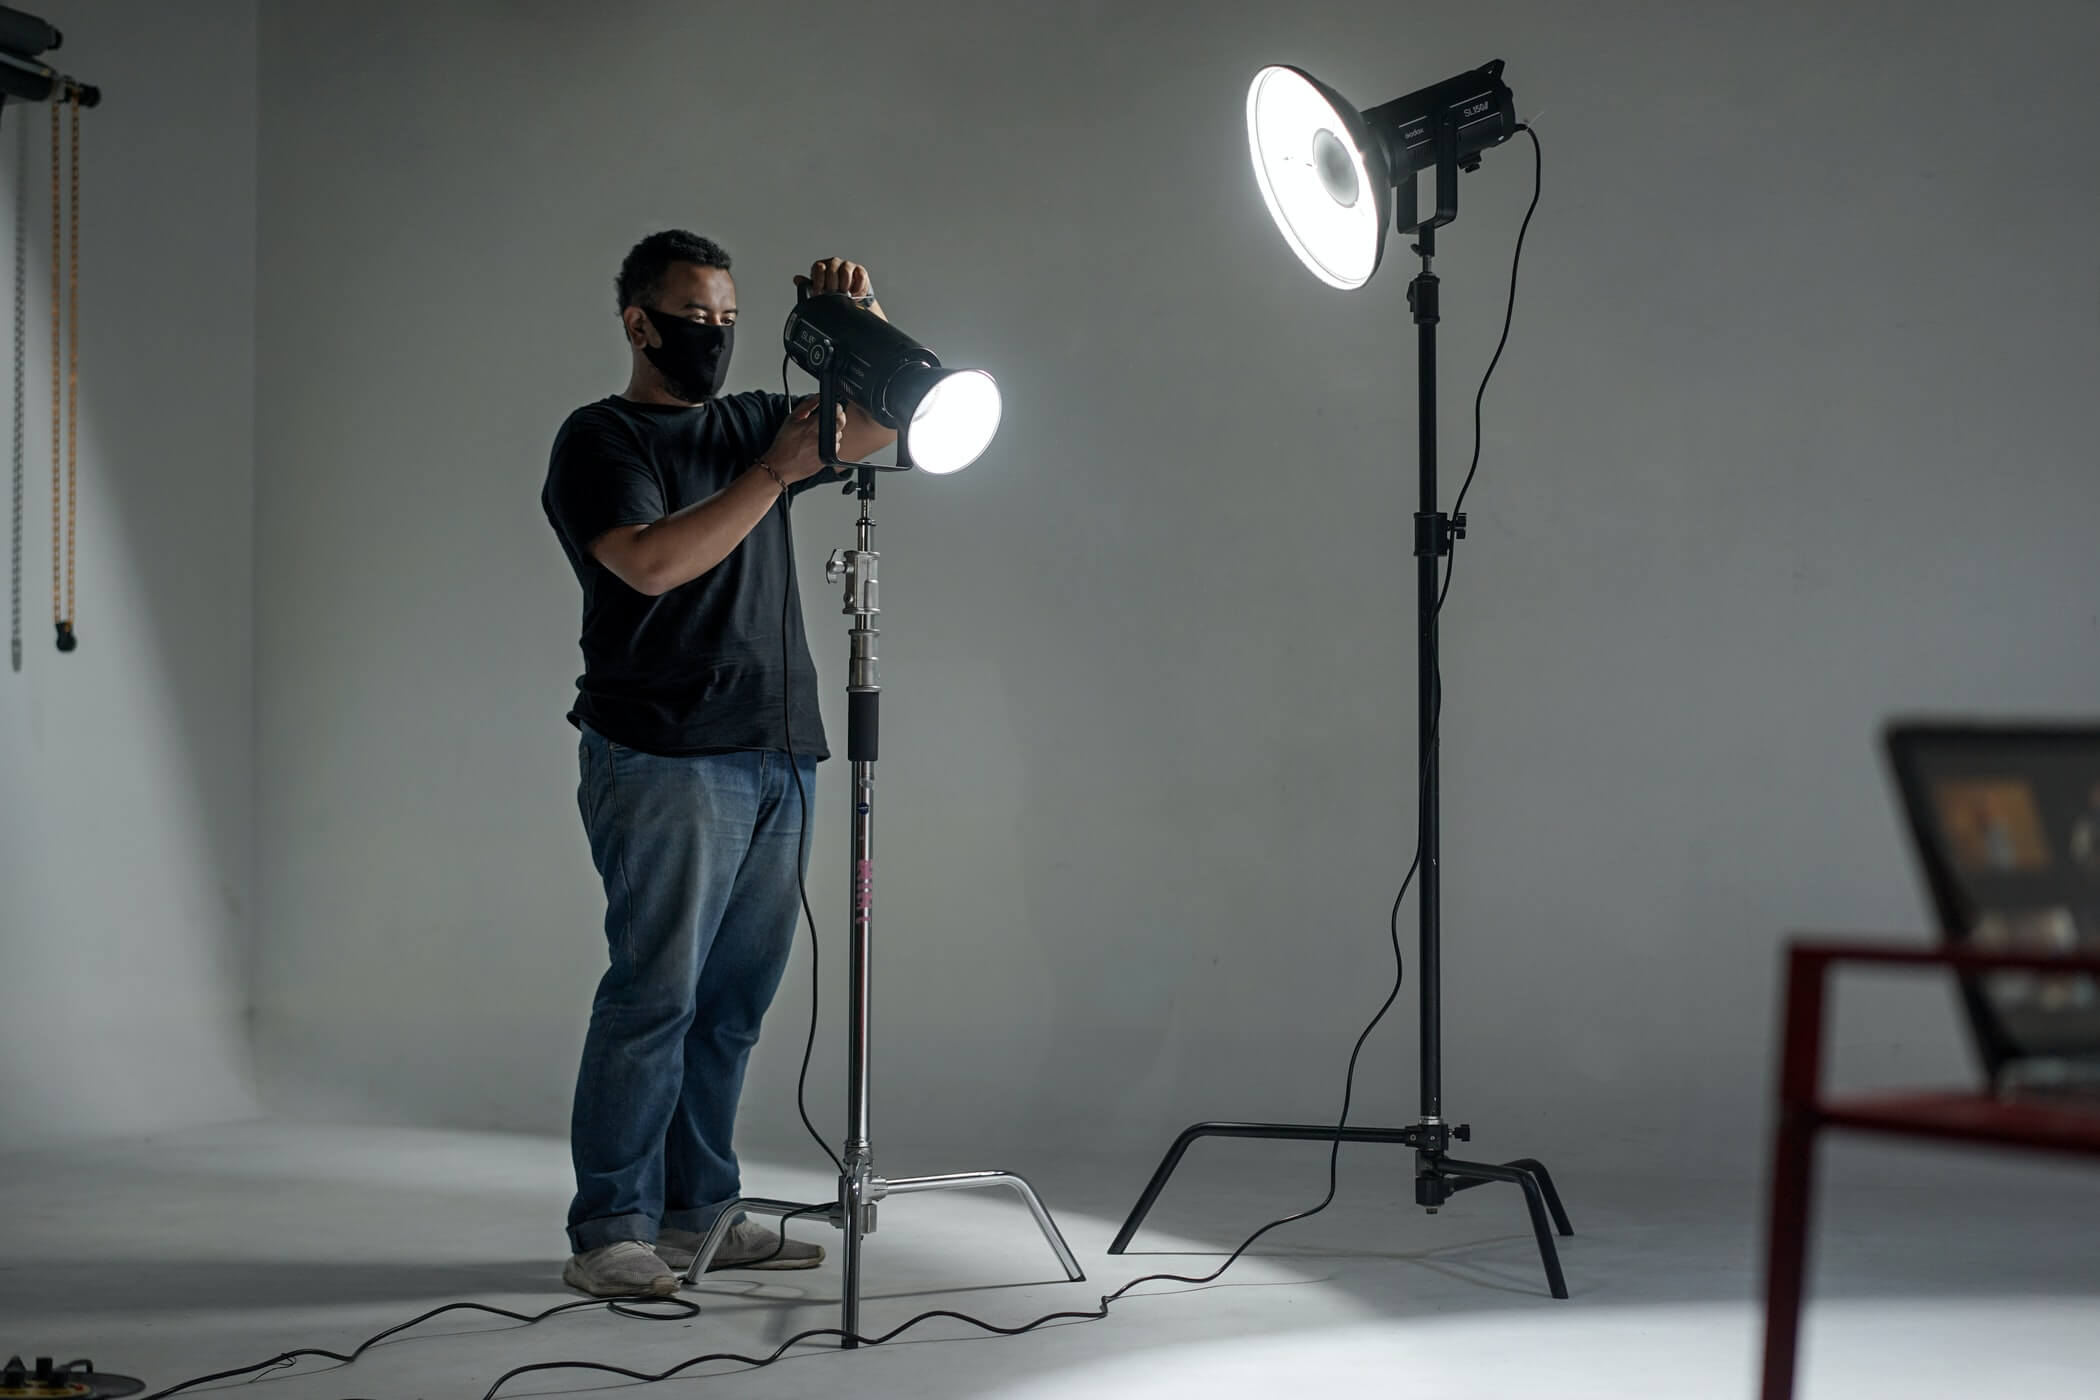 photography studio with a clothing photographer